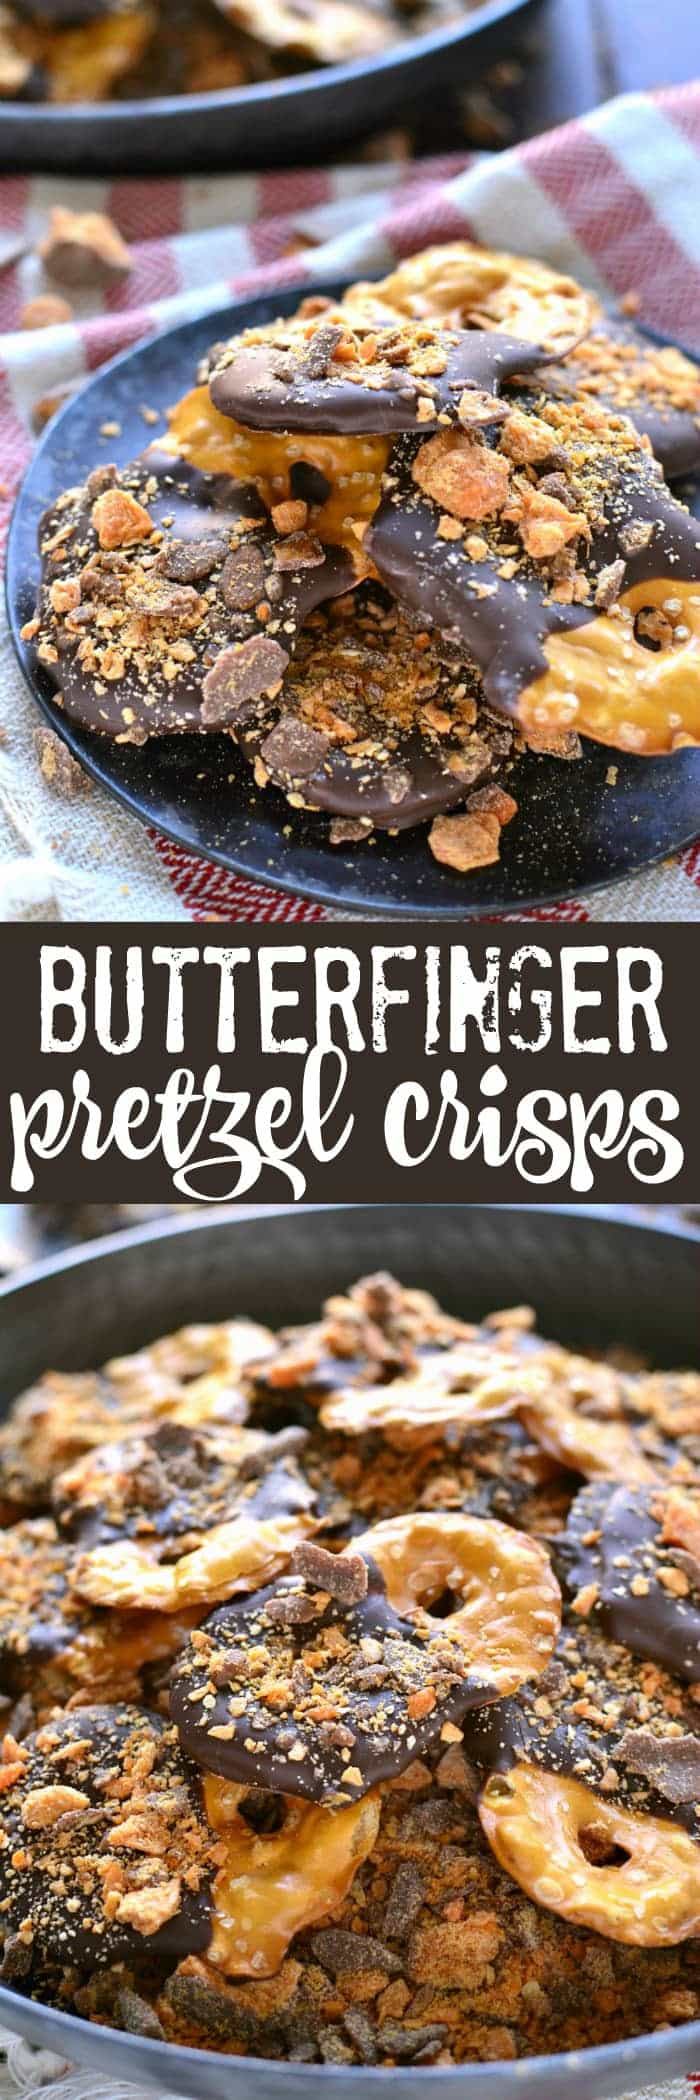 These Butterfinger Pretzel Crisps combine salty pretzel crisps with milk chocolate, a hint of rum extract, and BUTTERFINGERS! You better believe these will become your new favorite snack!